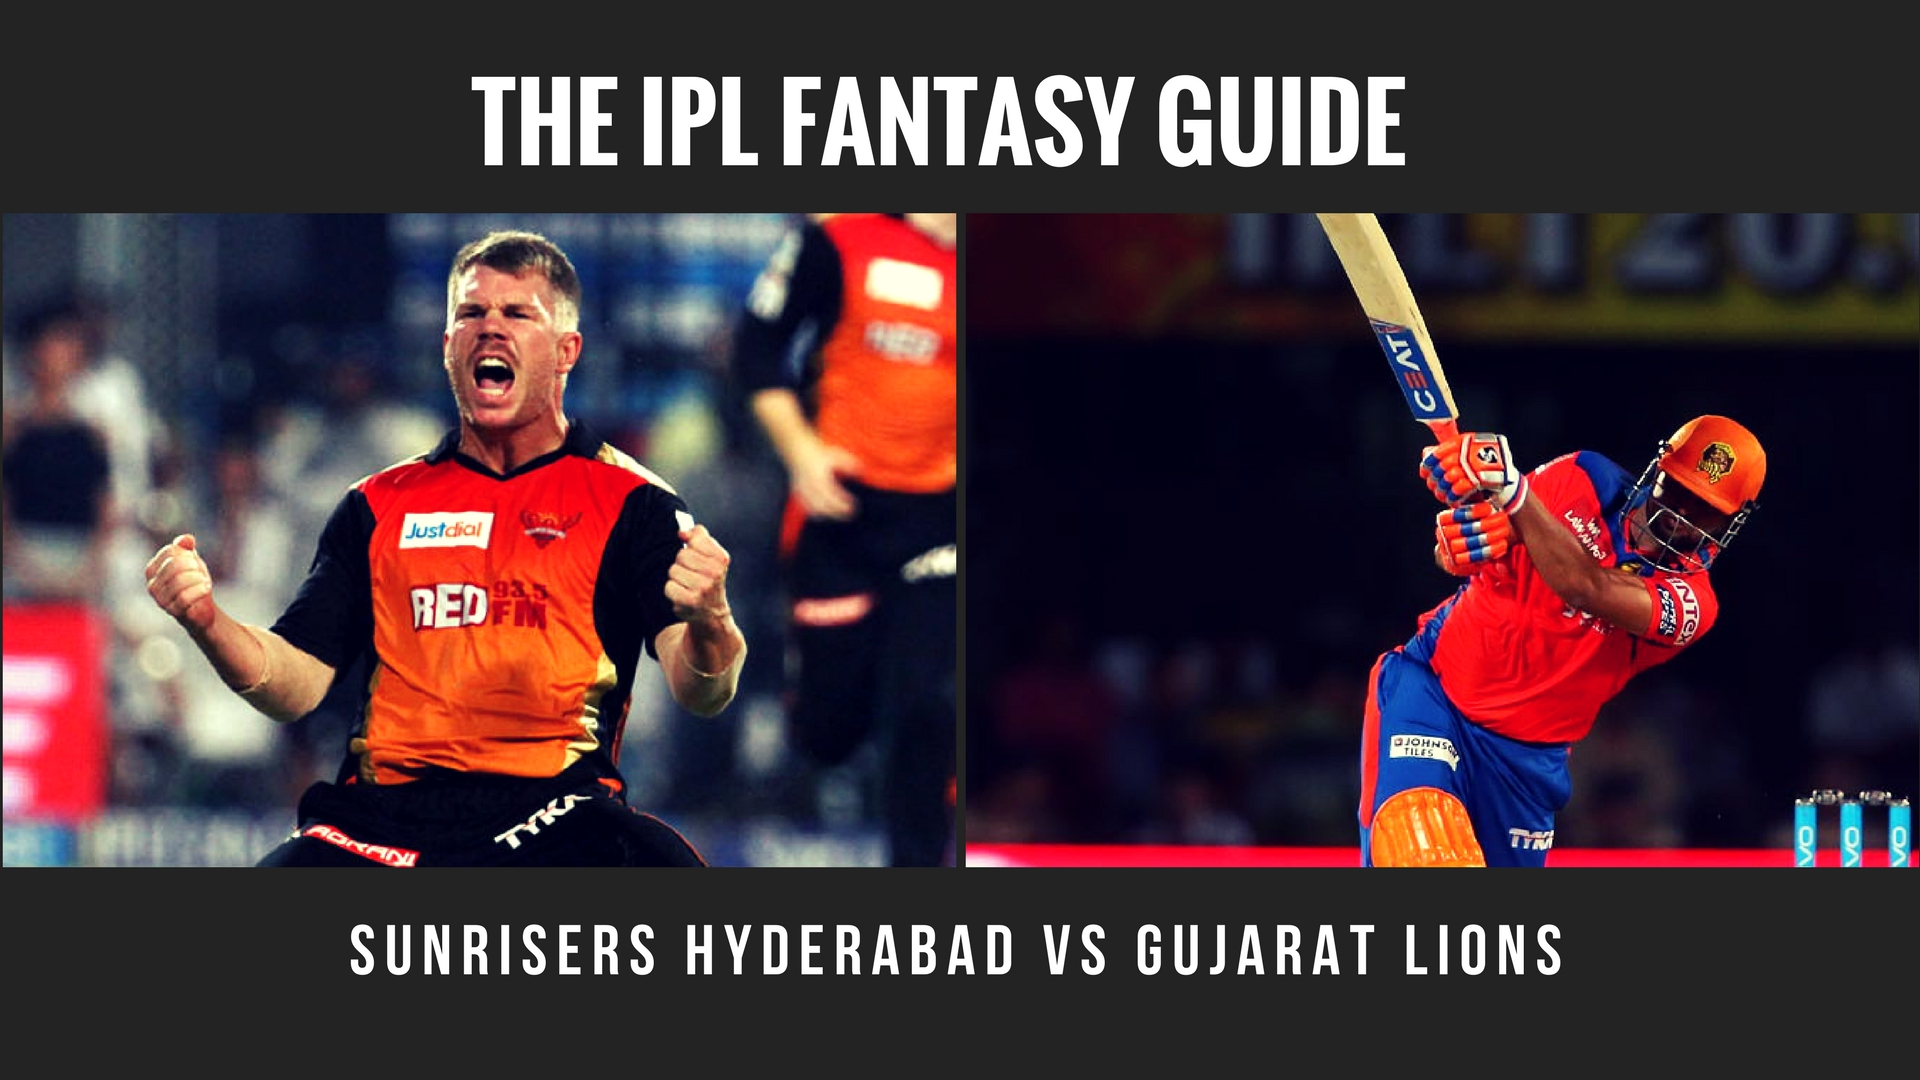 Fantasy tips for Sunrisers Hyderabad vs Gujarat Lions